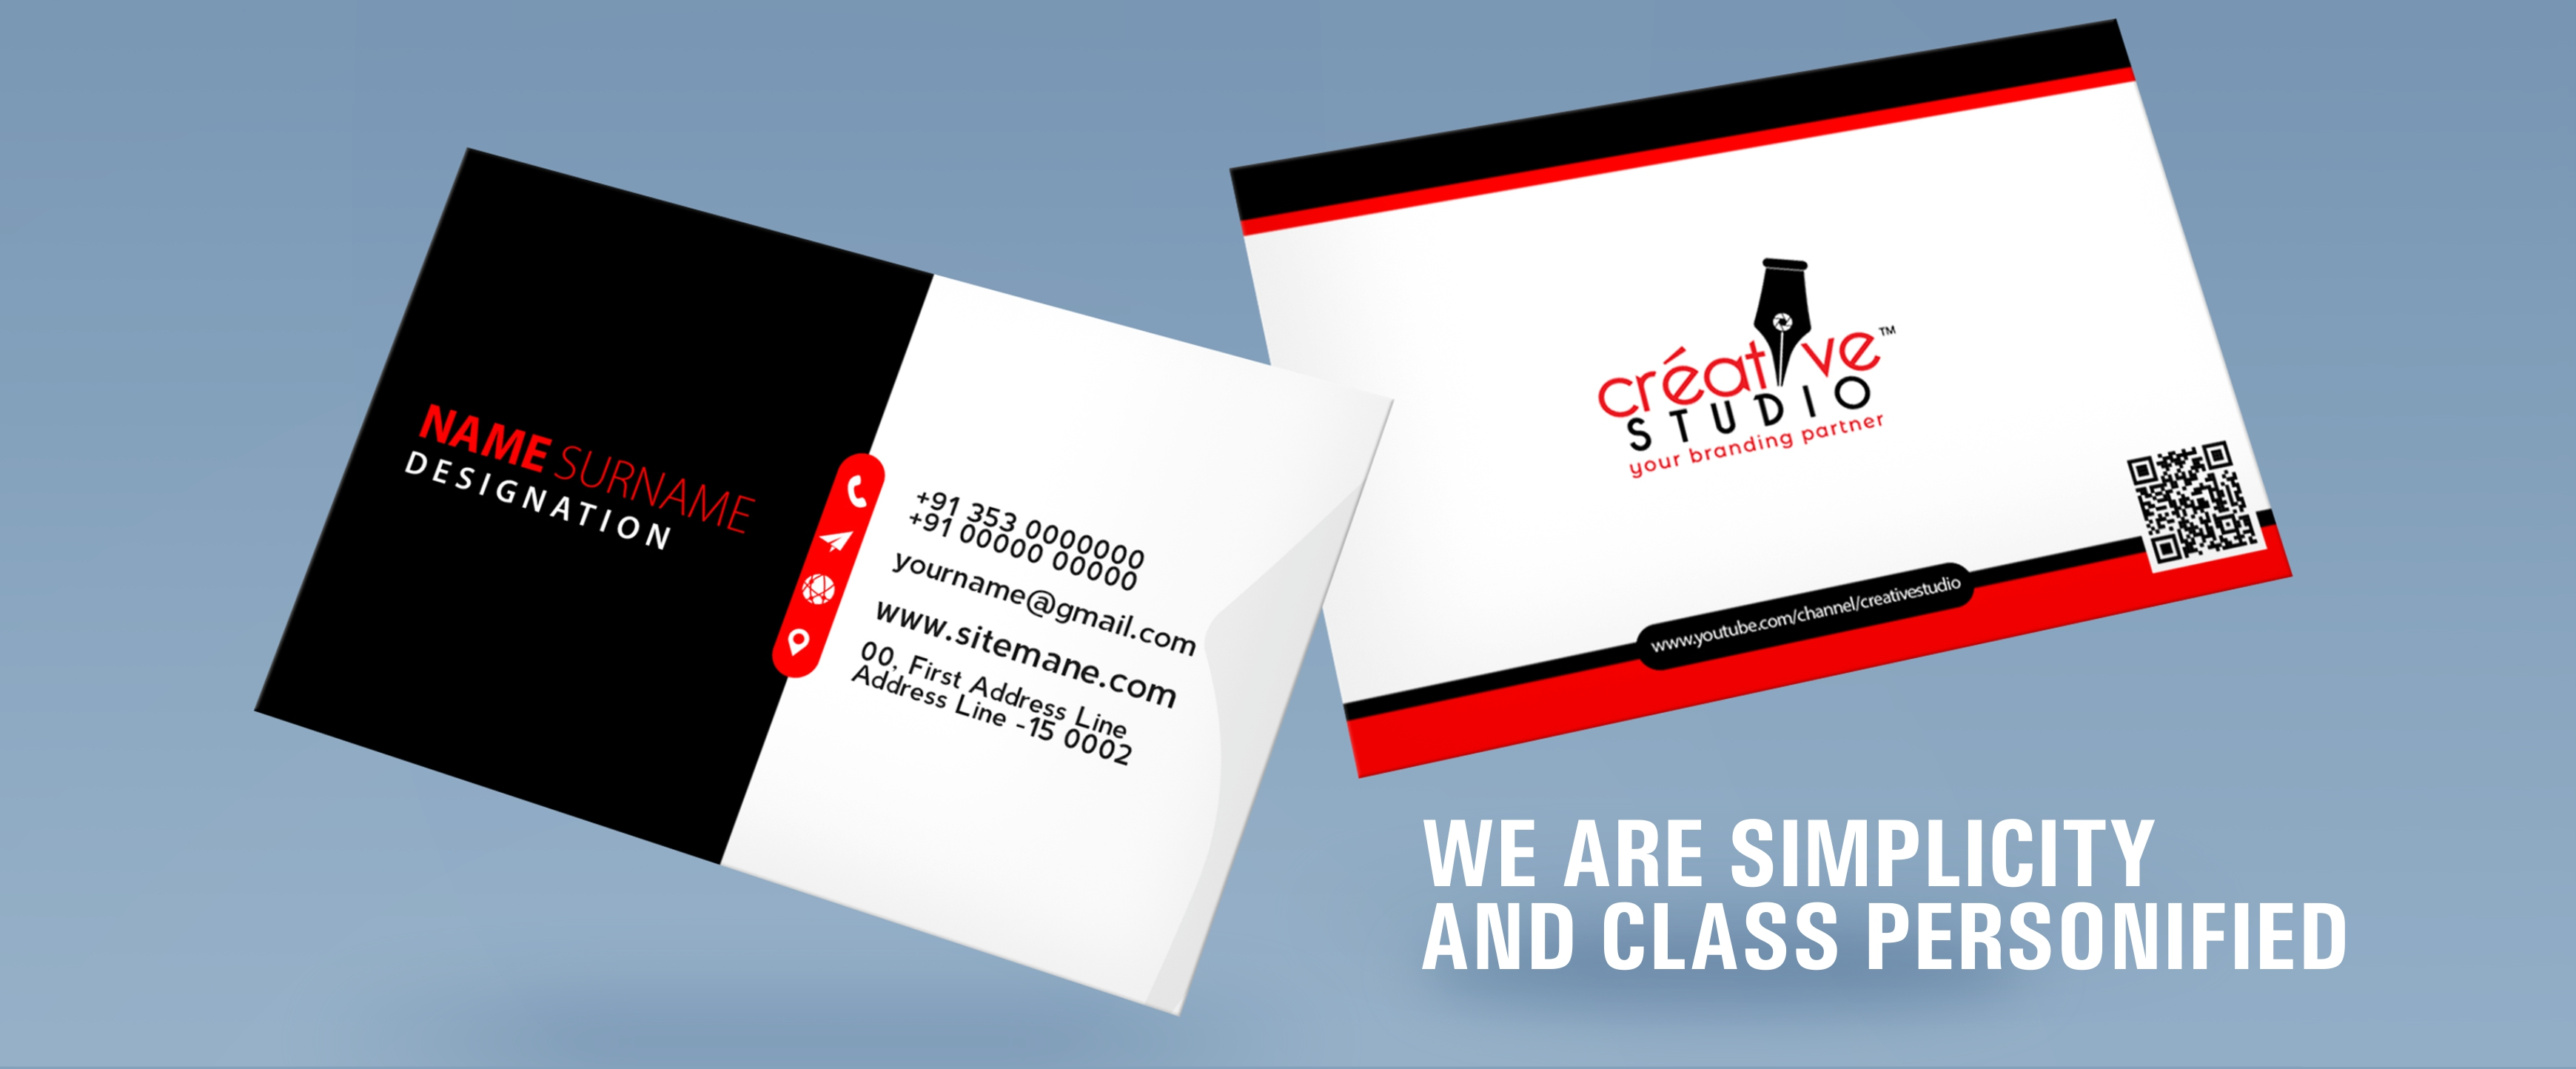 SLIDER 2 zoomin - Visiting Card Design Service by Creative Studio